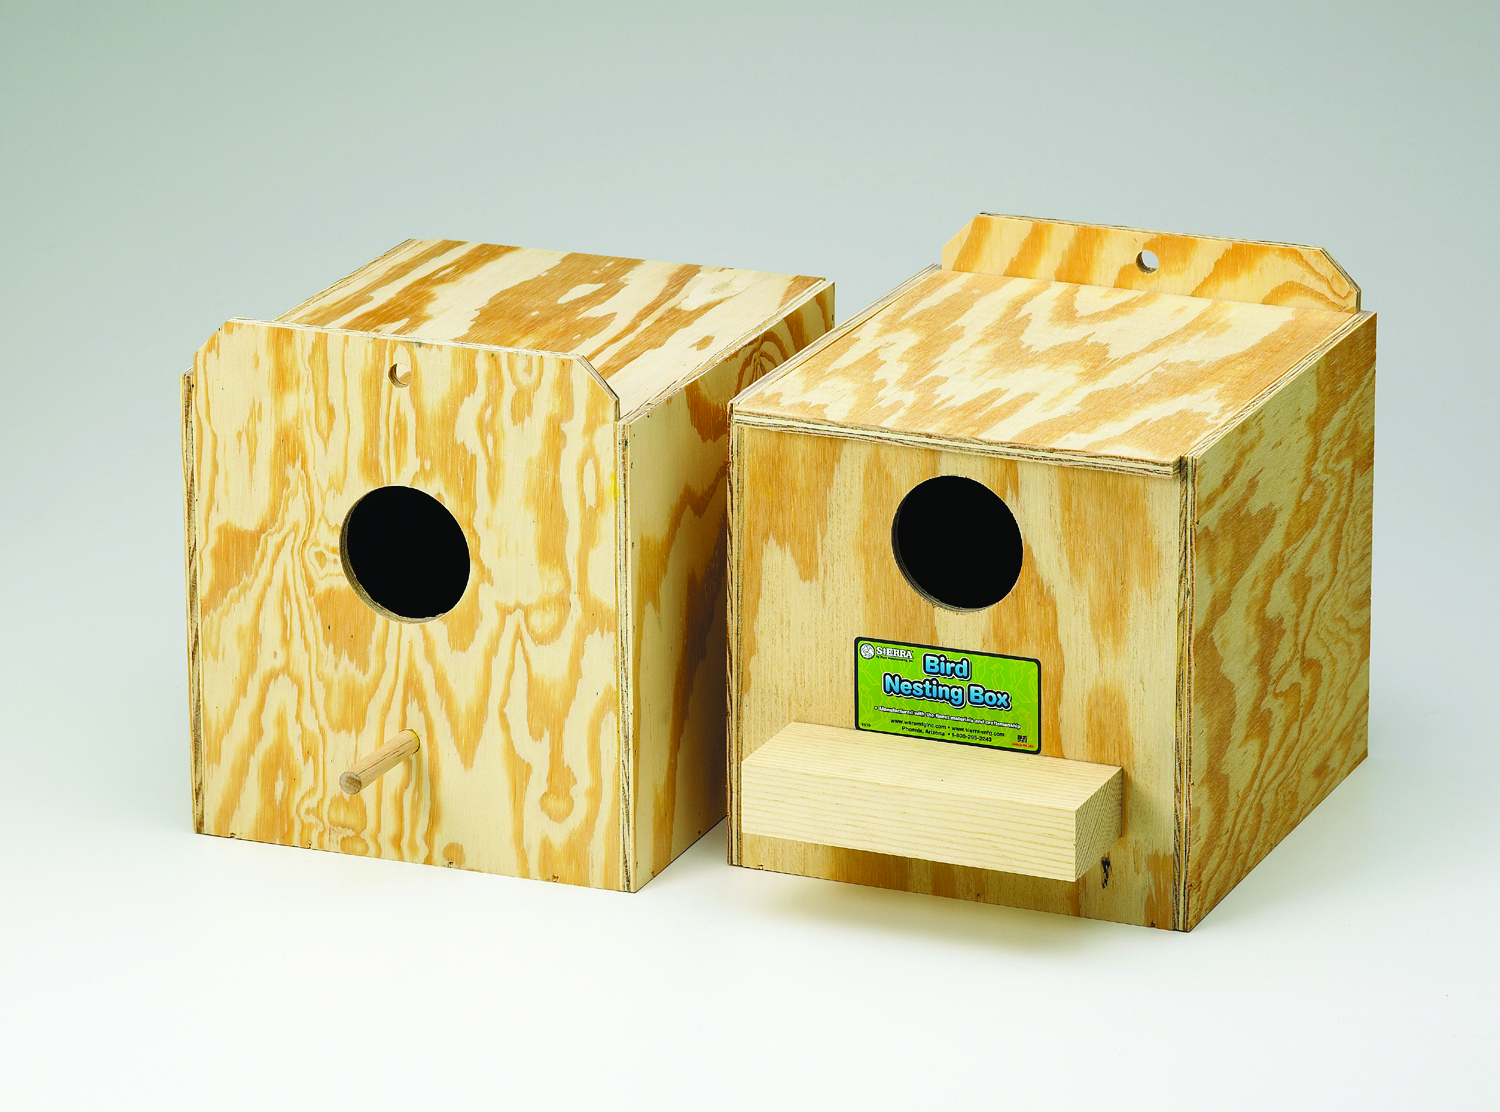 Cockatiel nesting box - regular